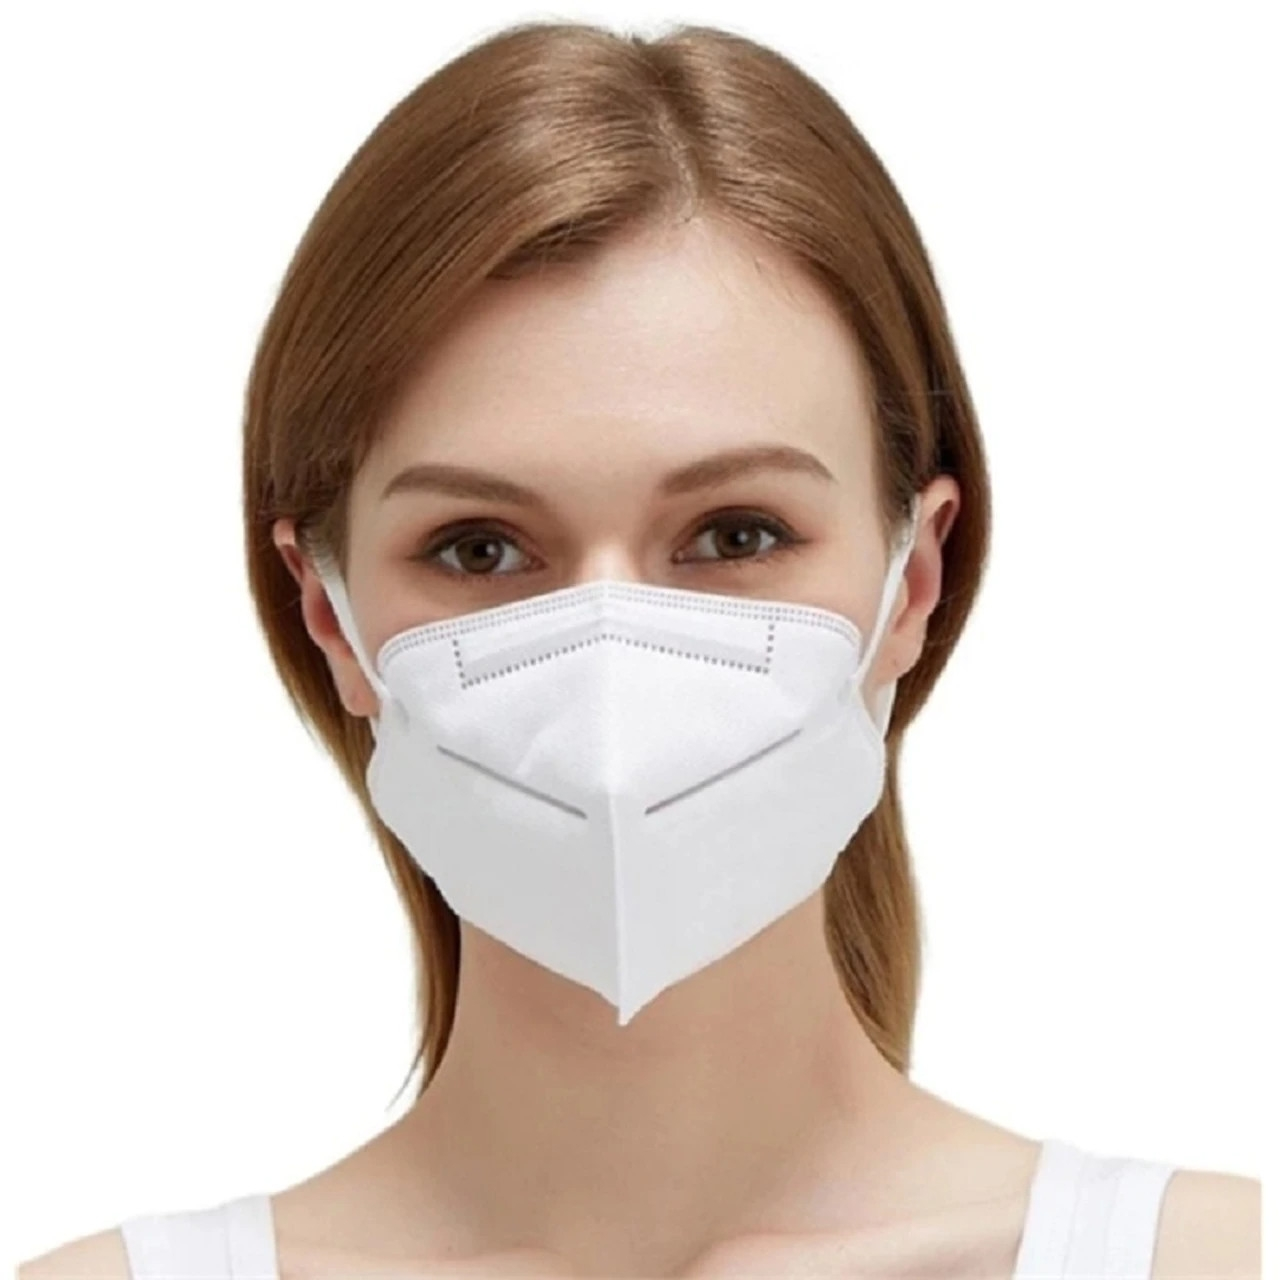 Buy cheap Reusable Kn90 FFP2 Non Medical 5 Layers Dustproof Face Mask For Daily Use product